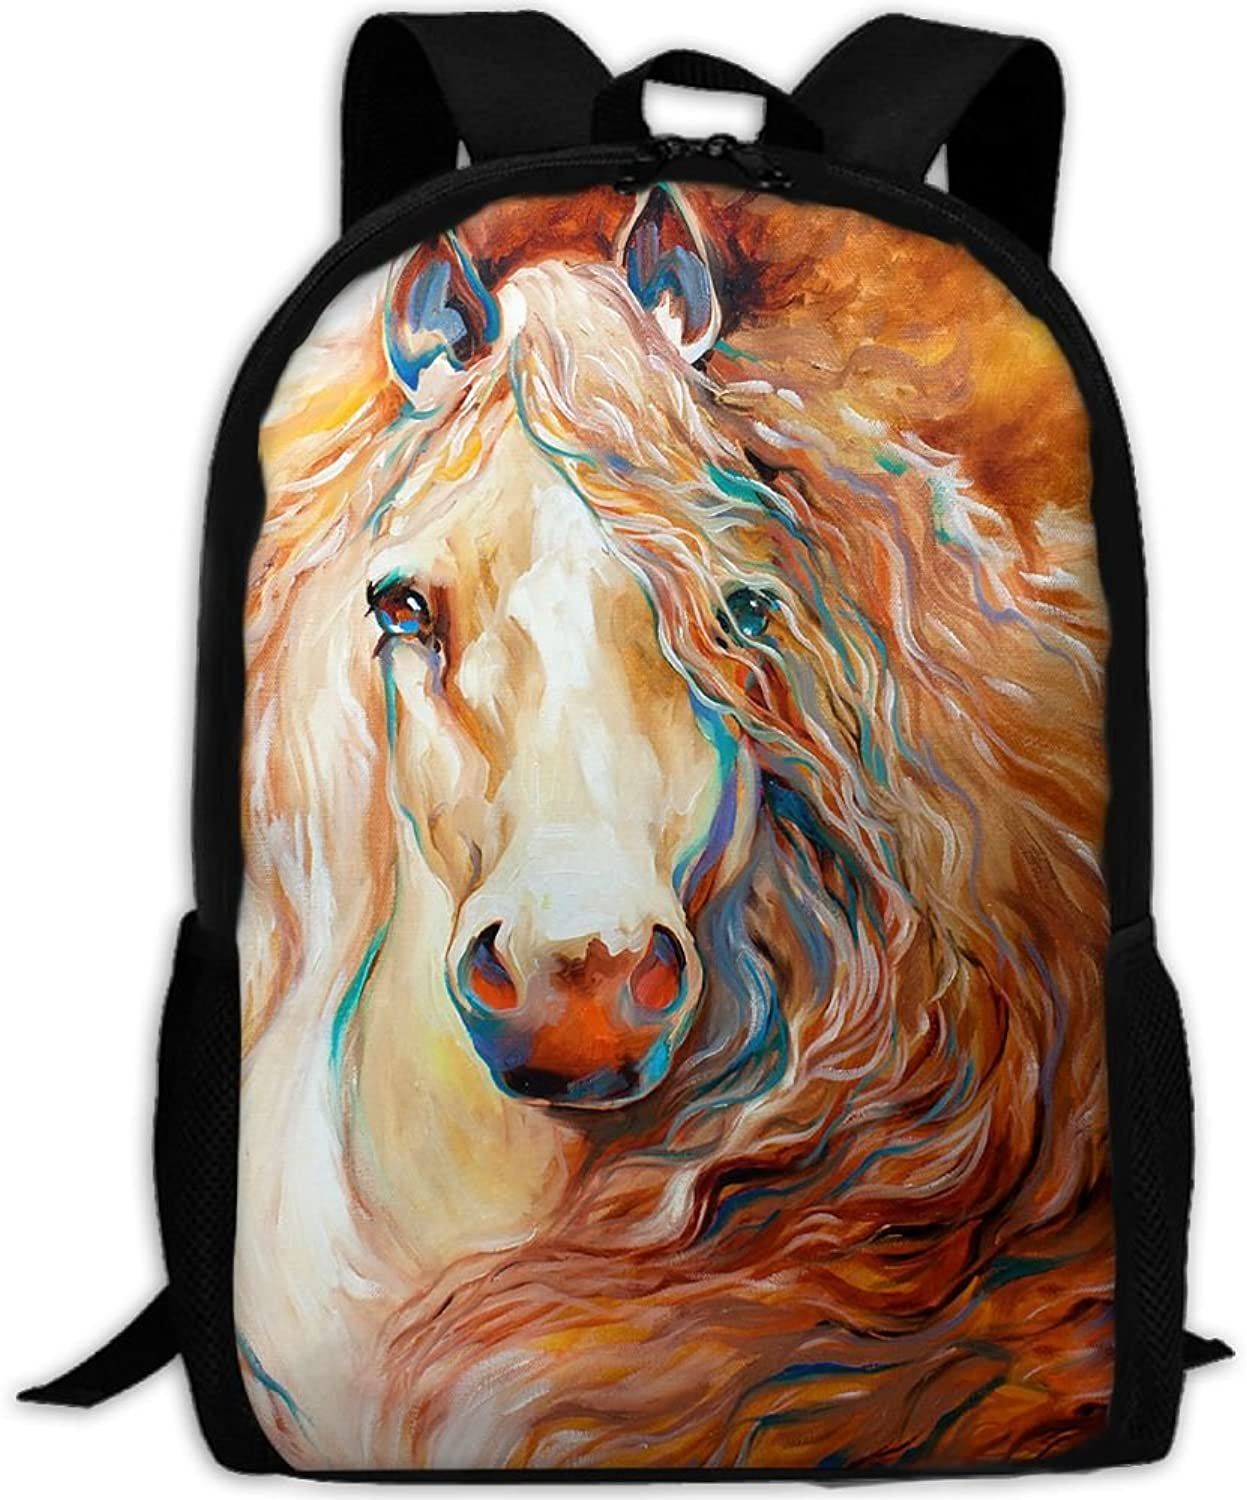 Adult Backpack Wild Horse Painting College Daypack Oxford Bag Unisex Business Travel Sports Bag with Adjustable Strap